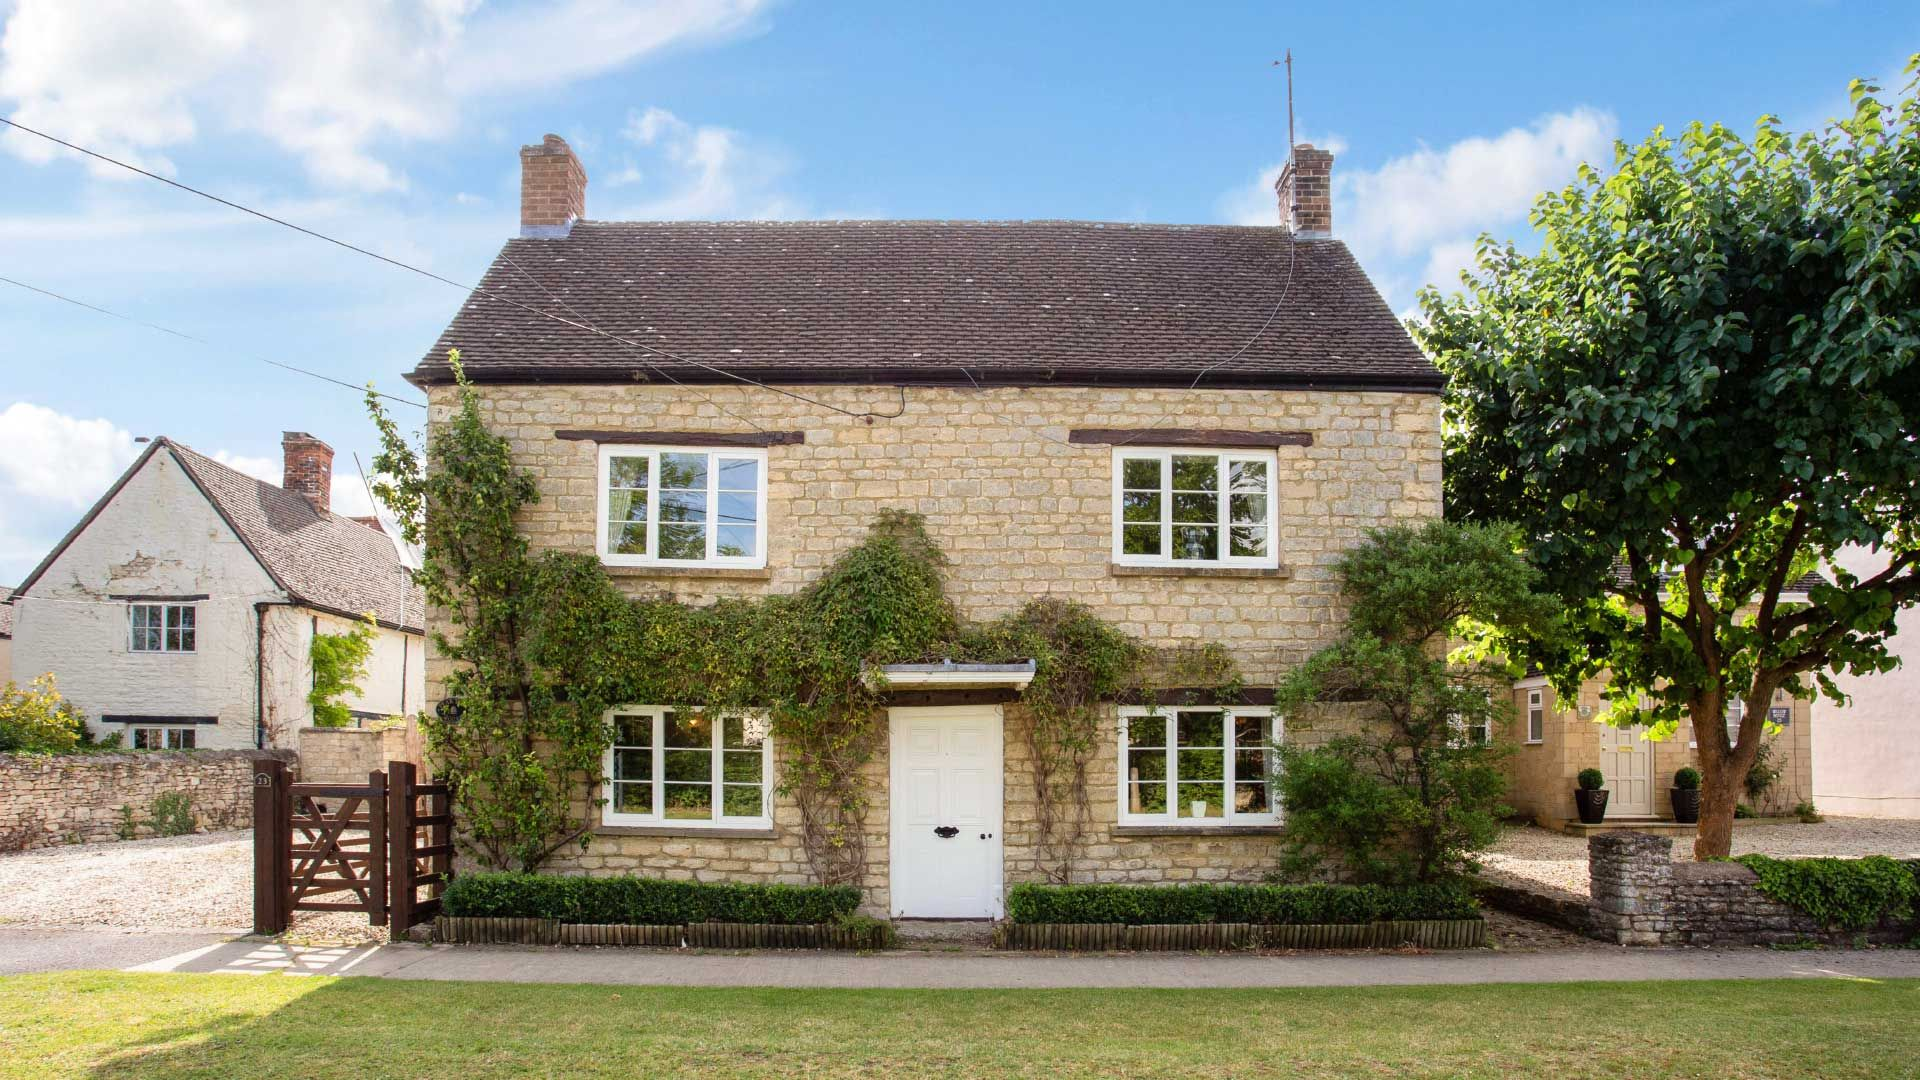 Pear Tree House - StayCotswold